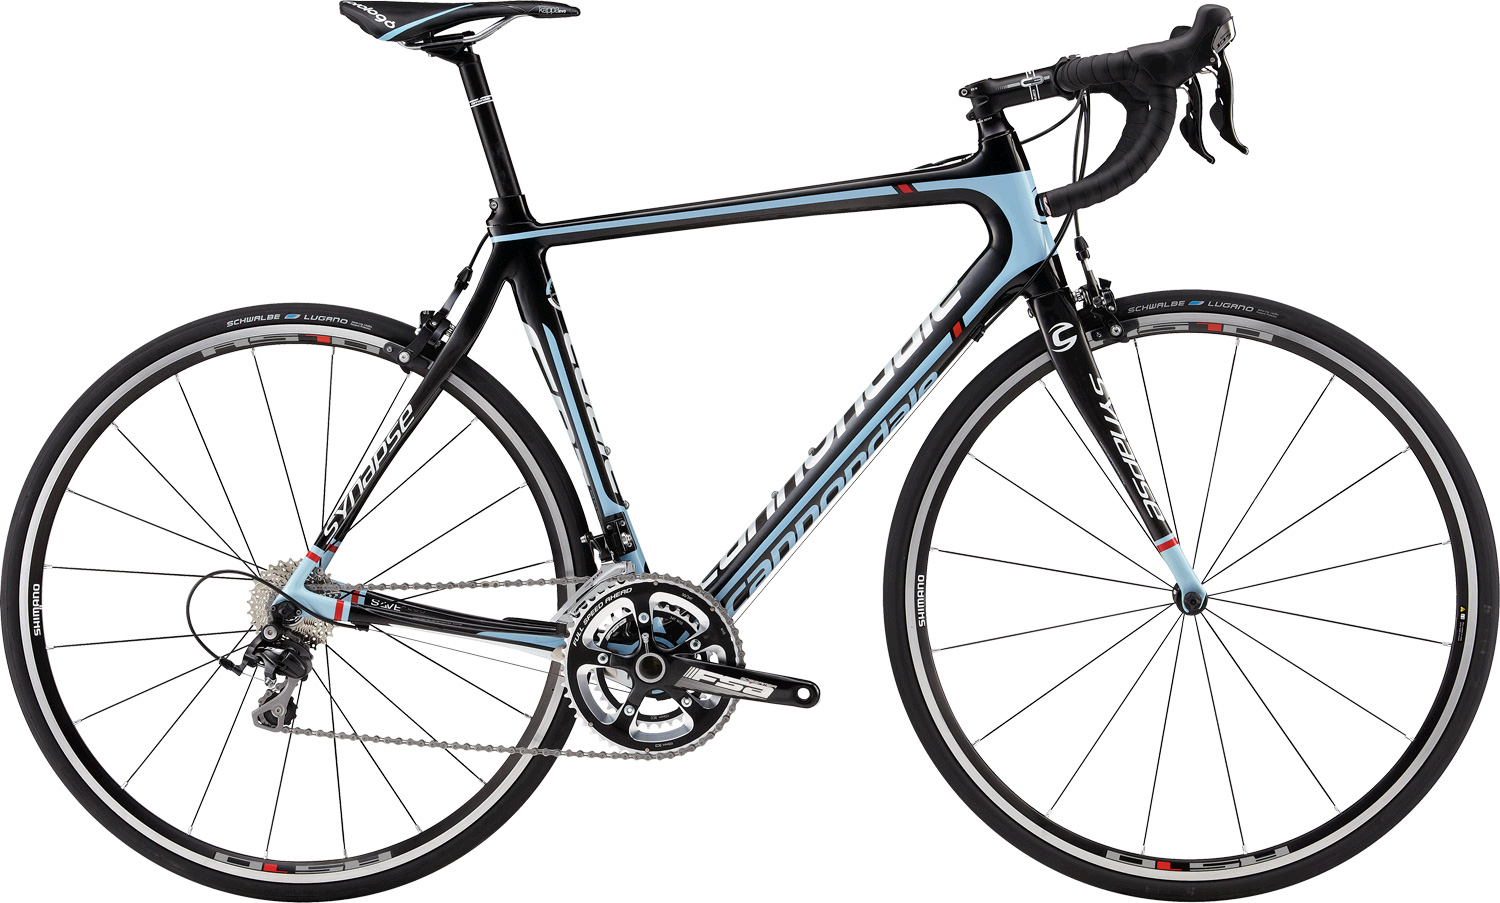 2014 cannondale synapse alloy 105 review html